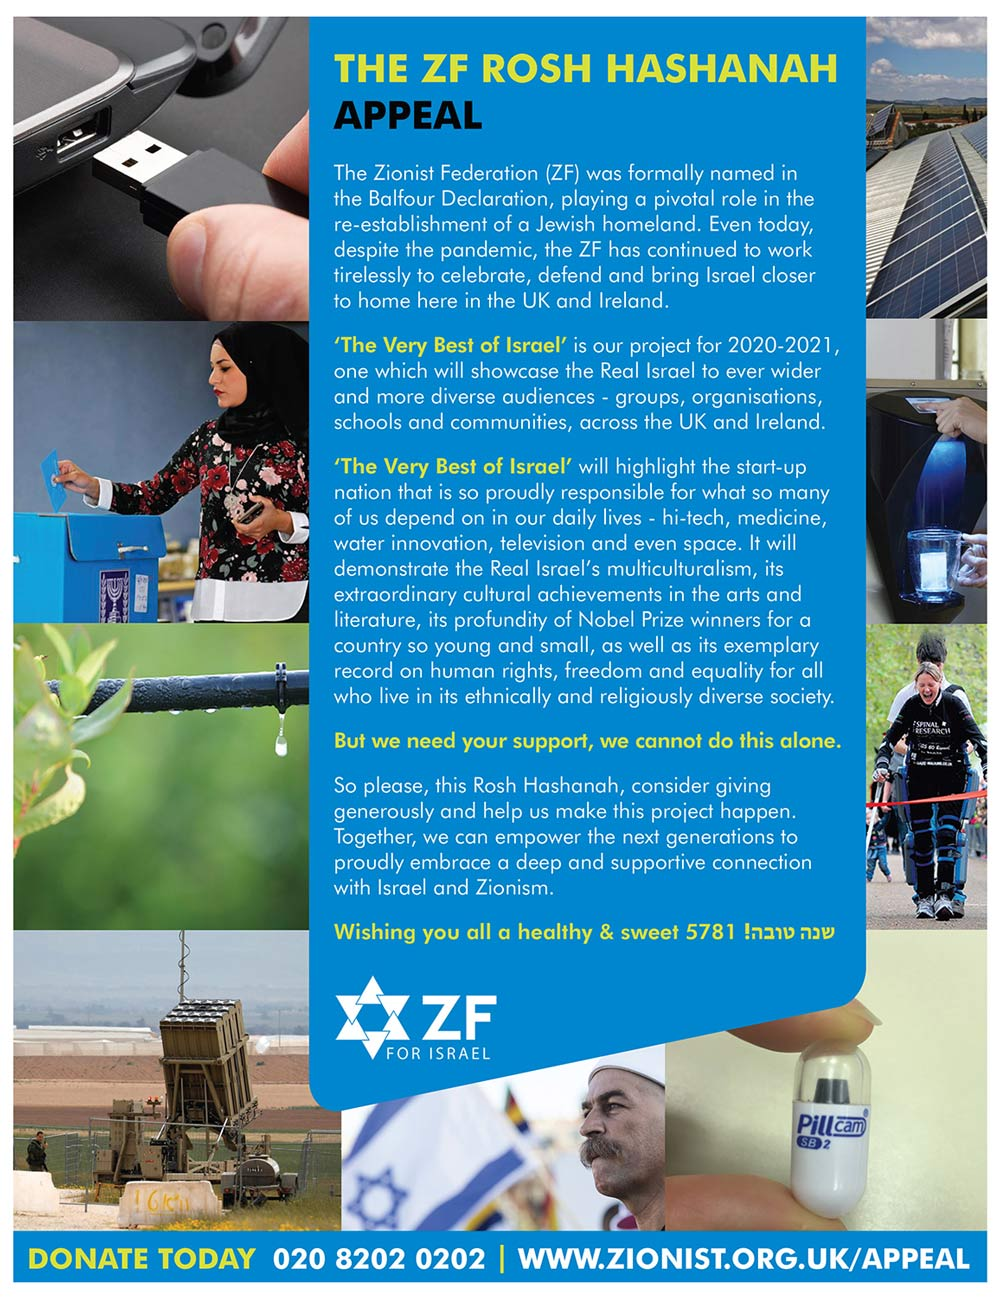 The ZF Rosh Hashanah Appeal